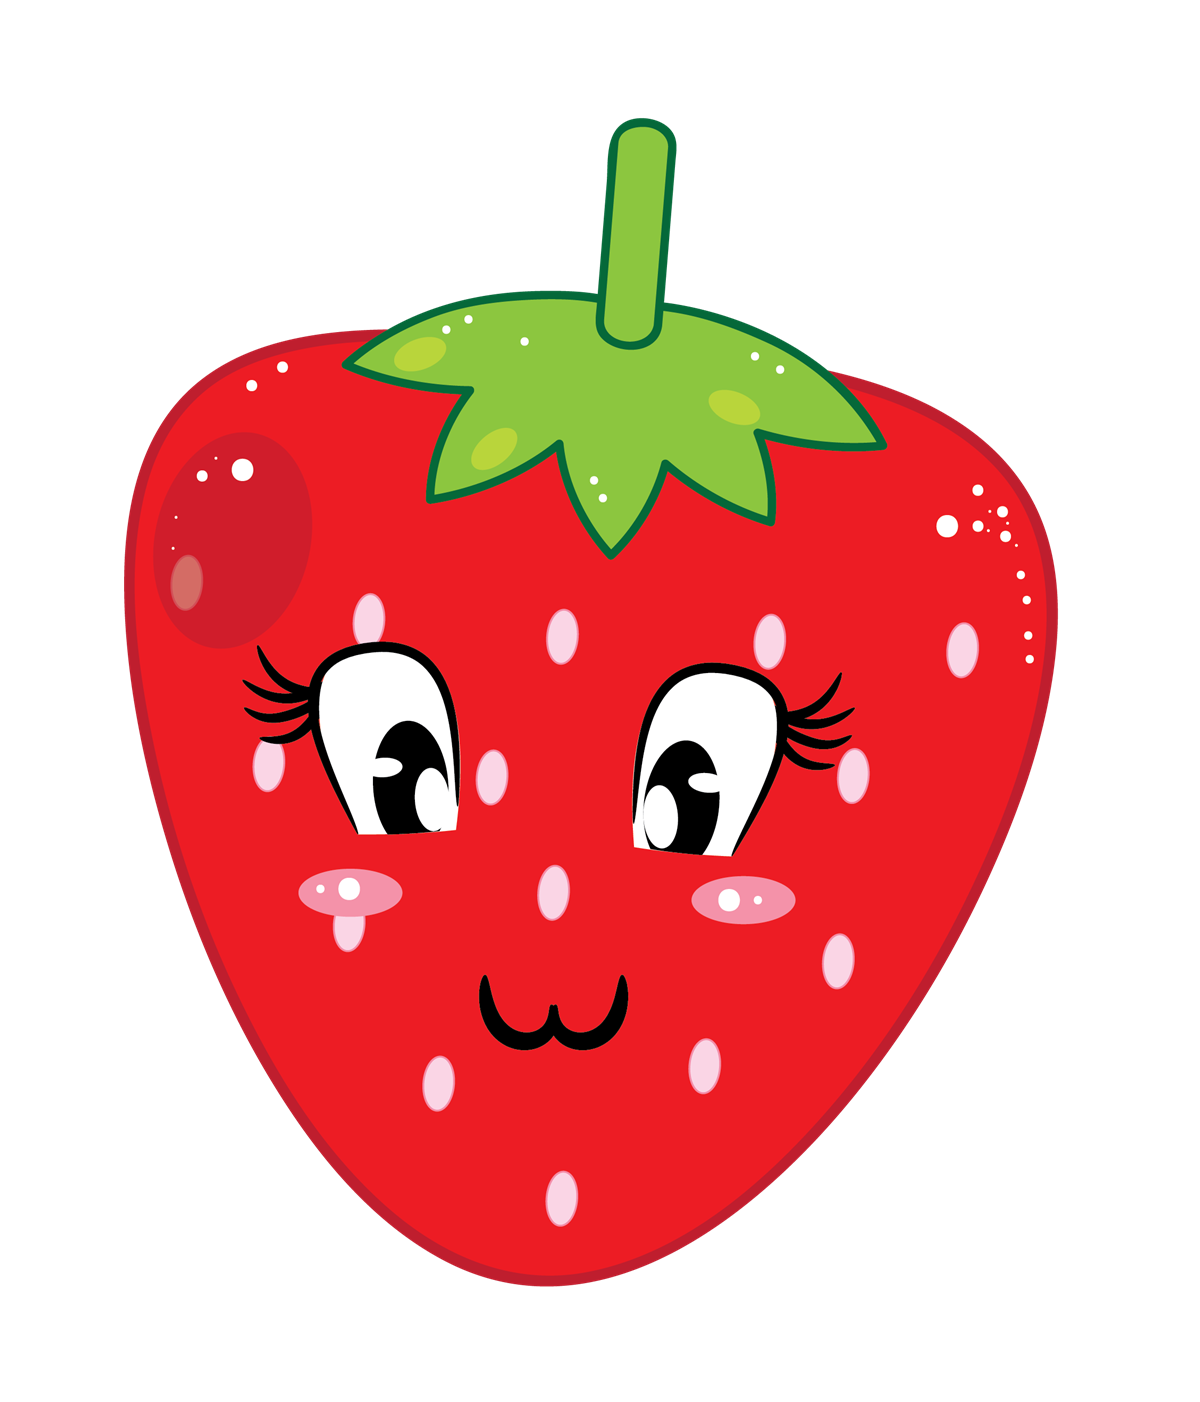 This cute cartoon strawberry clip art done in cool kawaii style is free for personal or commercial use. Add life to your projects by using this clip art.